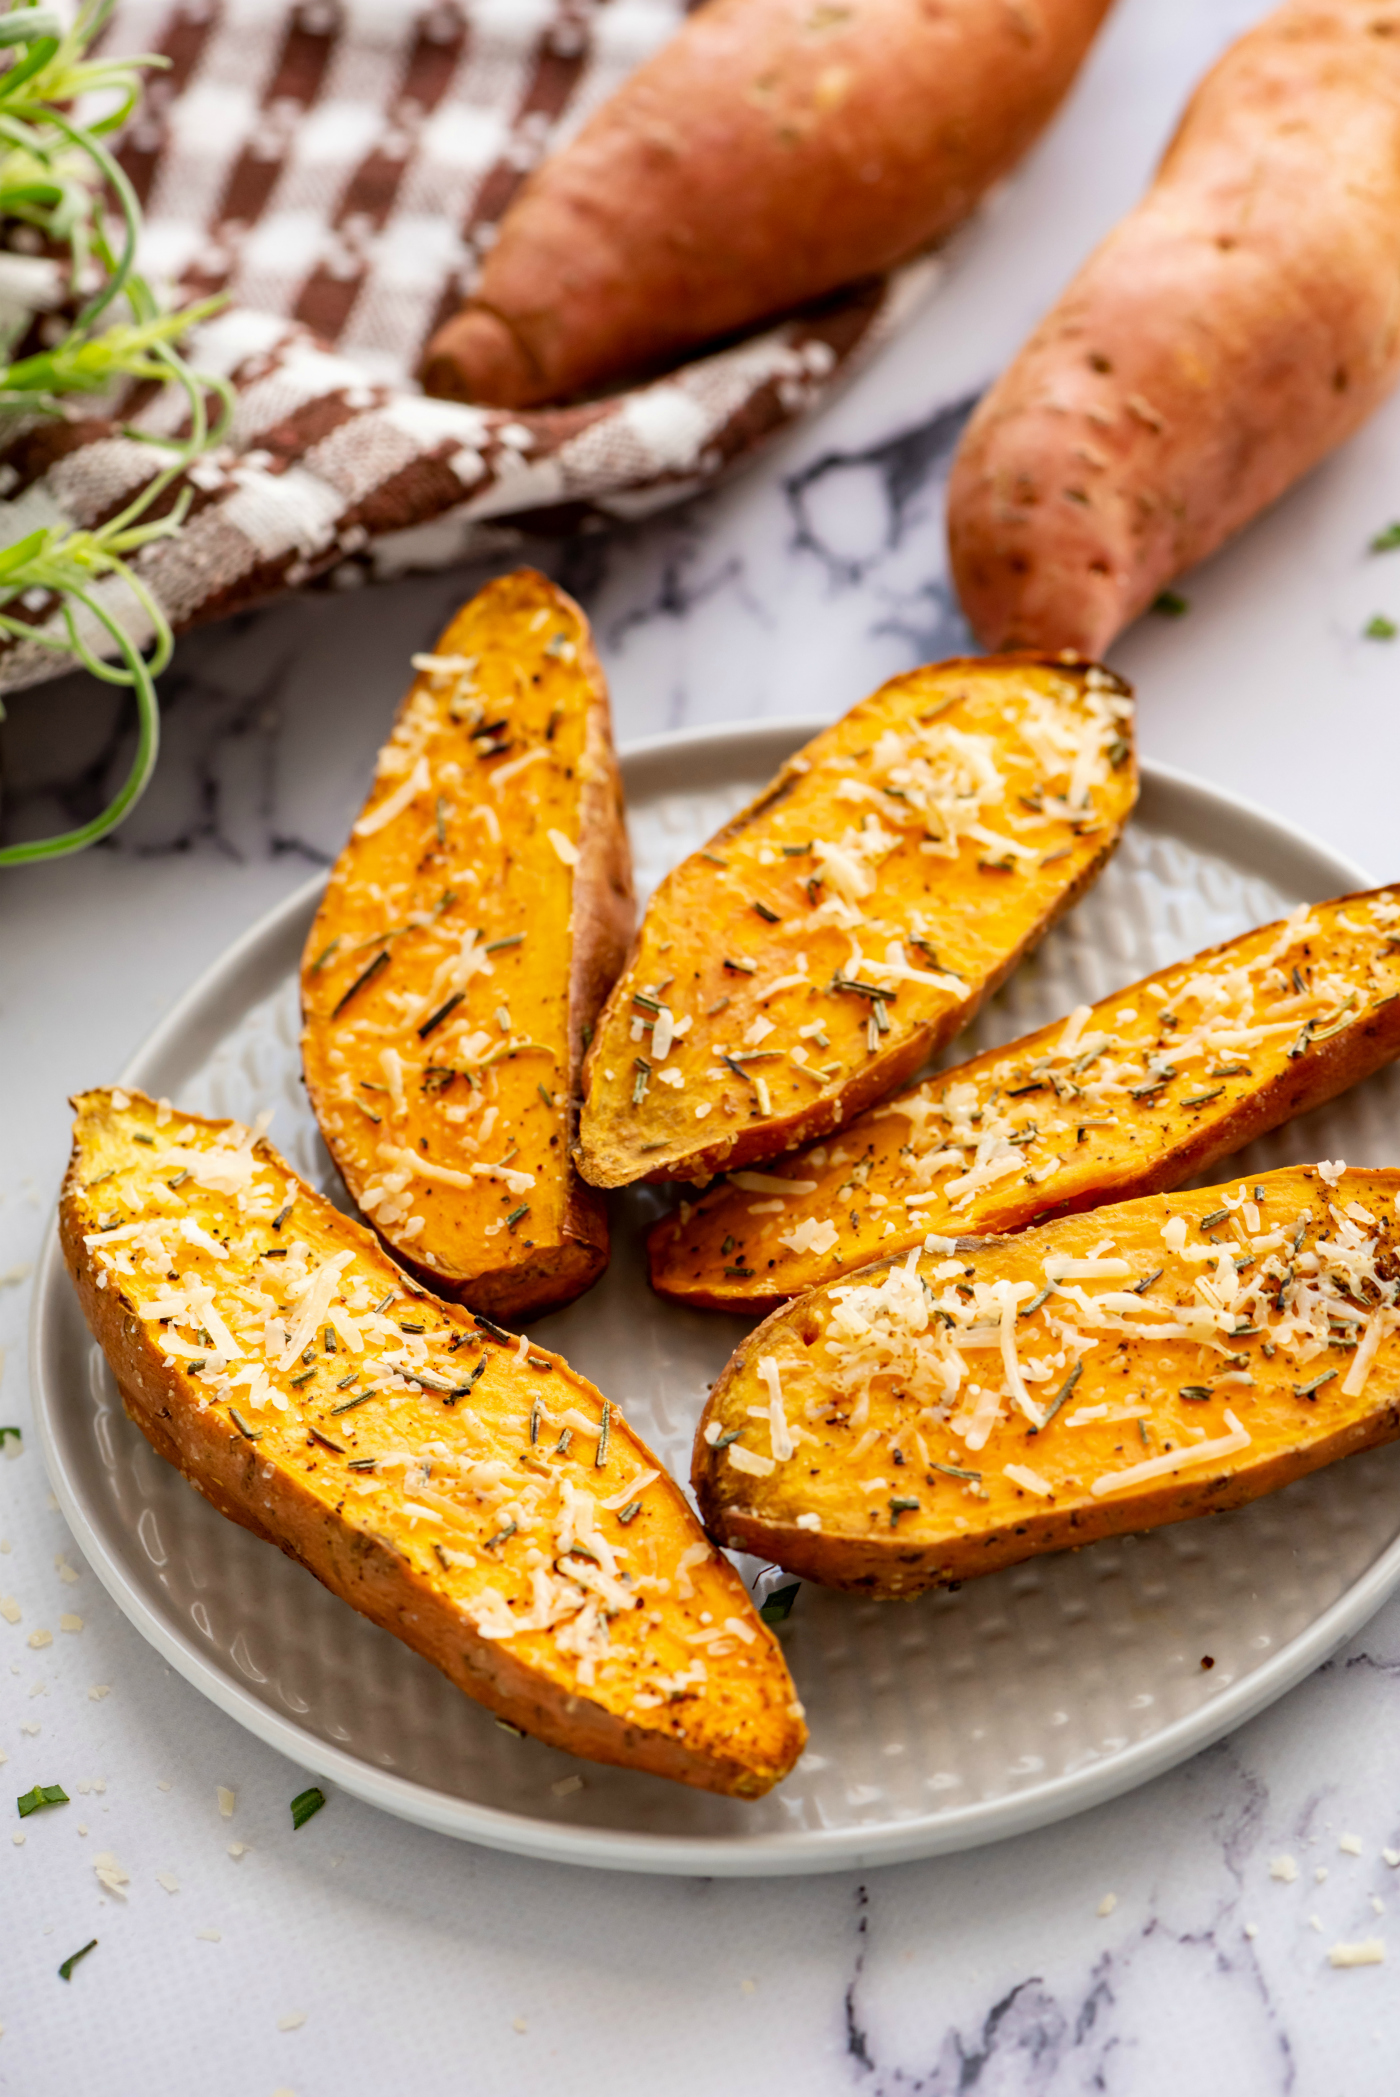 Easy Side Dish Roasted Sweet Potatoes With Rosemary Recipe